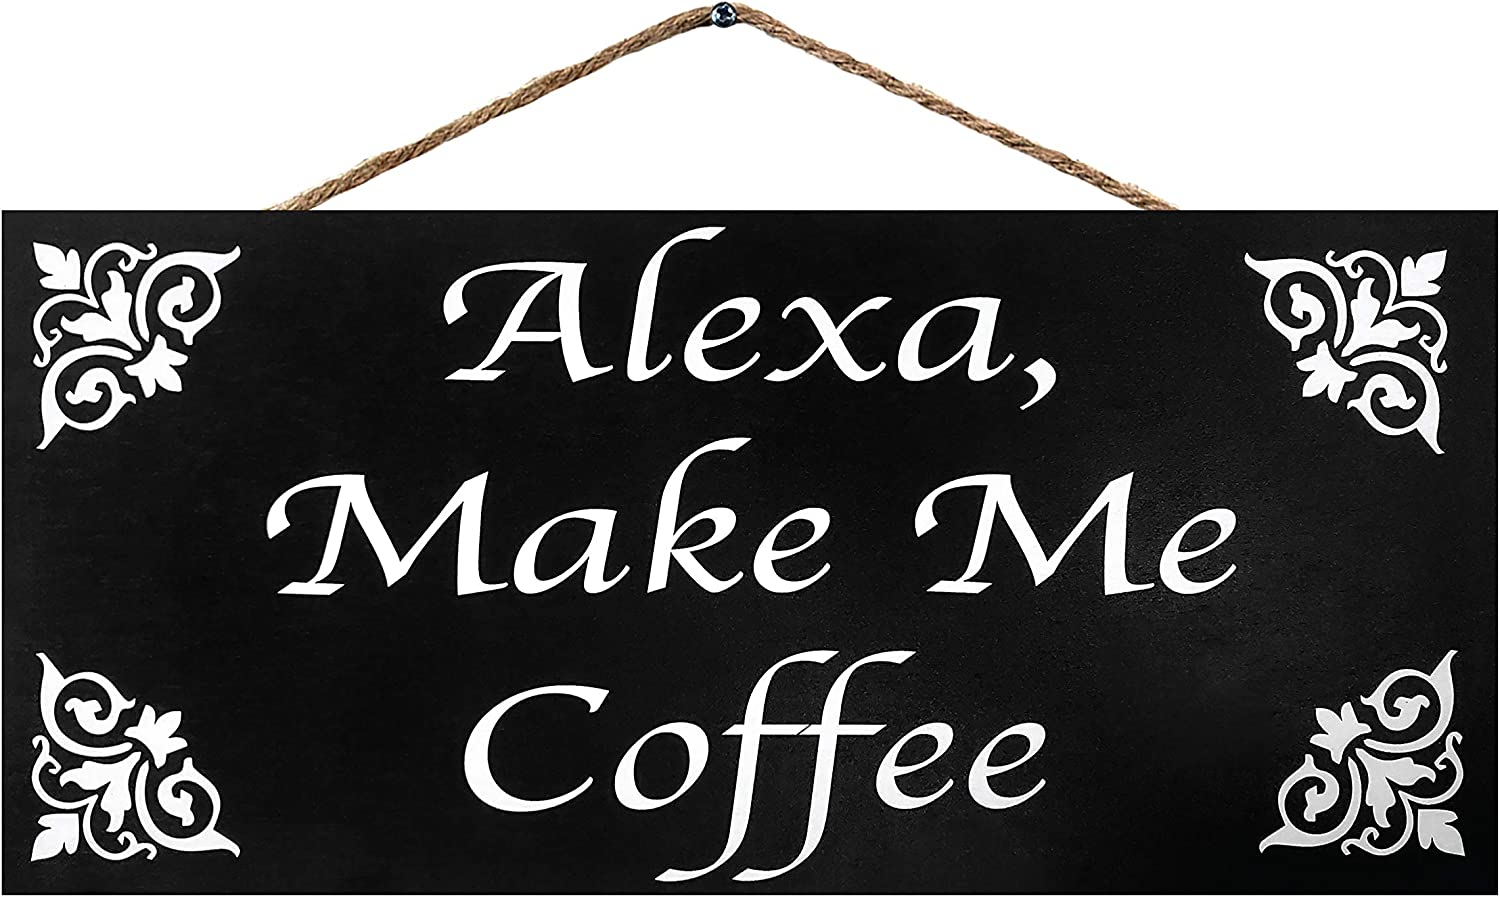 JennyGems Alexa Make Me Coffee | Funny Coffee Sign | Coffee Themed Kitchen Decor | Coffee Lovers Gifts | Coffee Bar Accessories| Made in USA